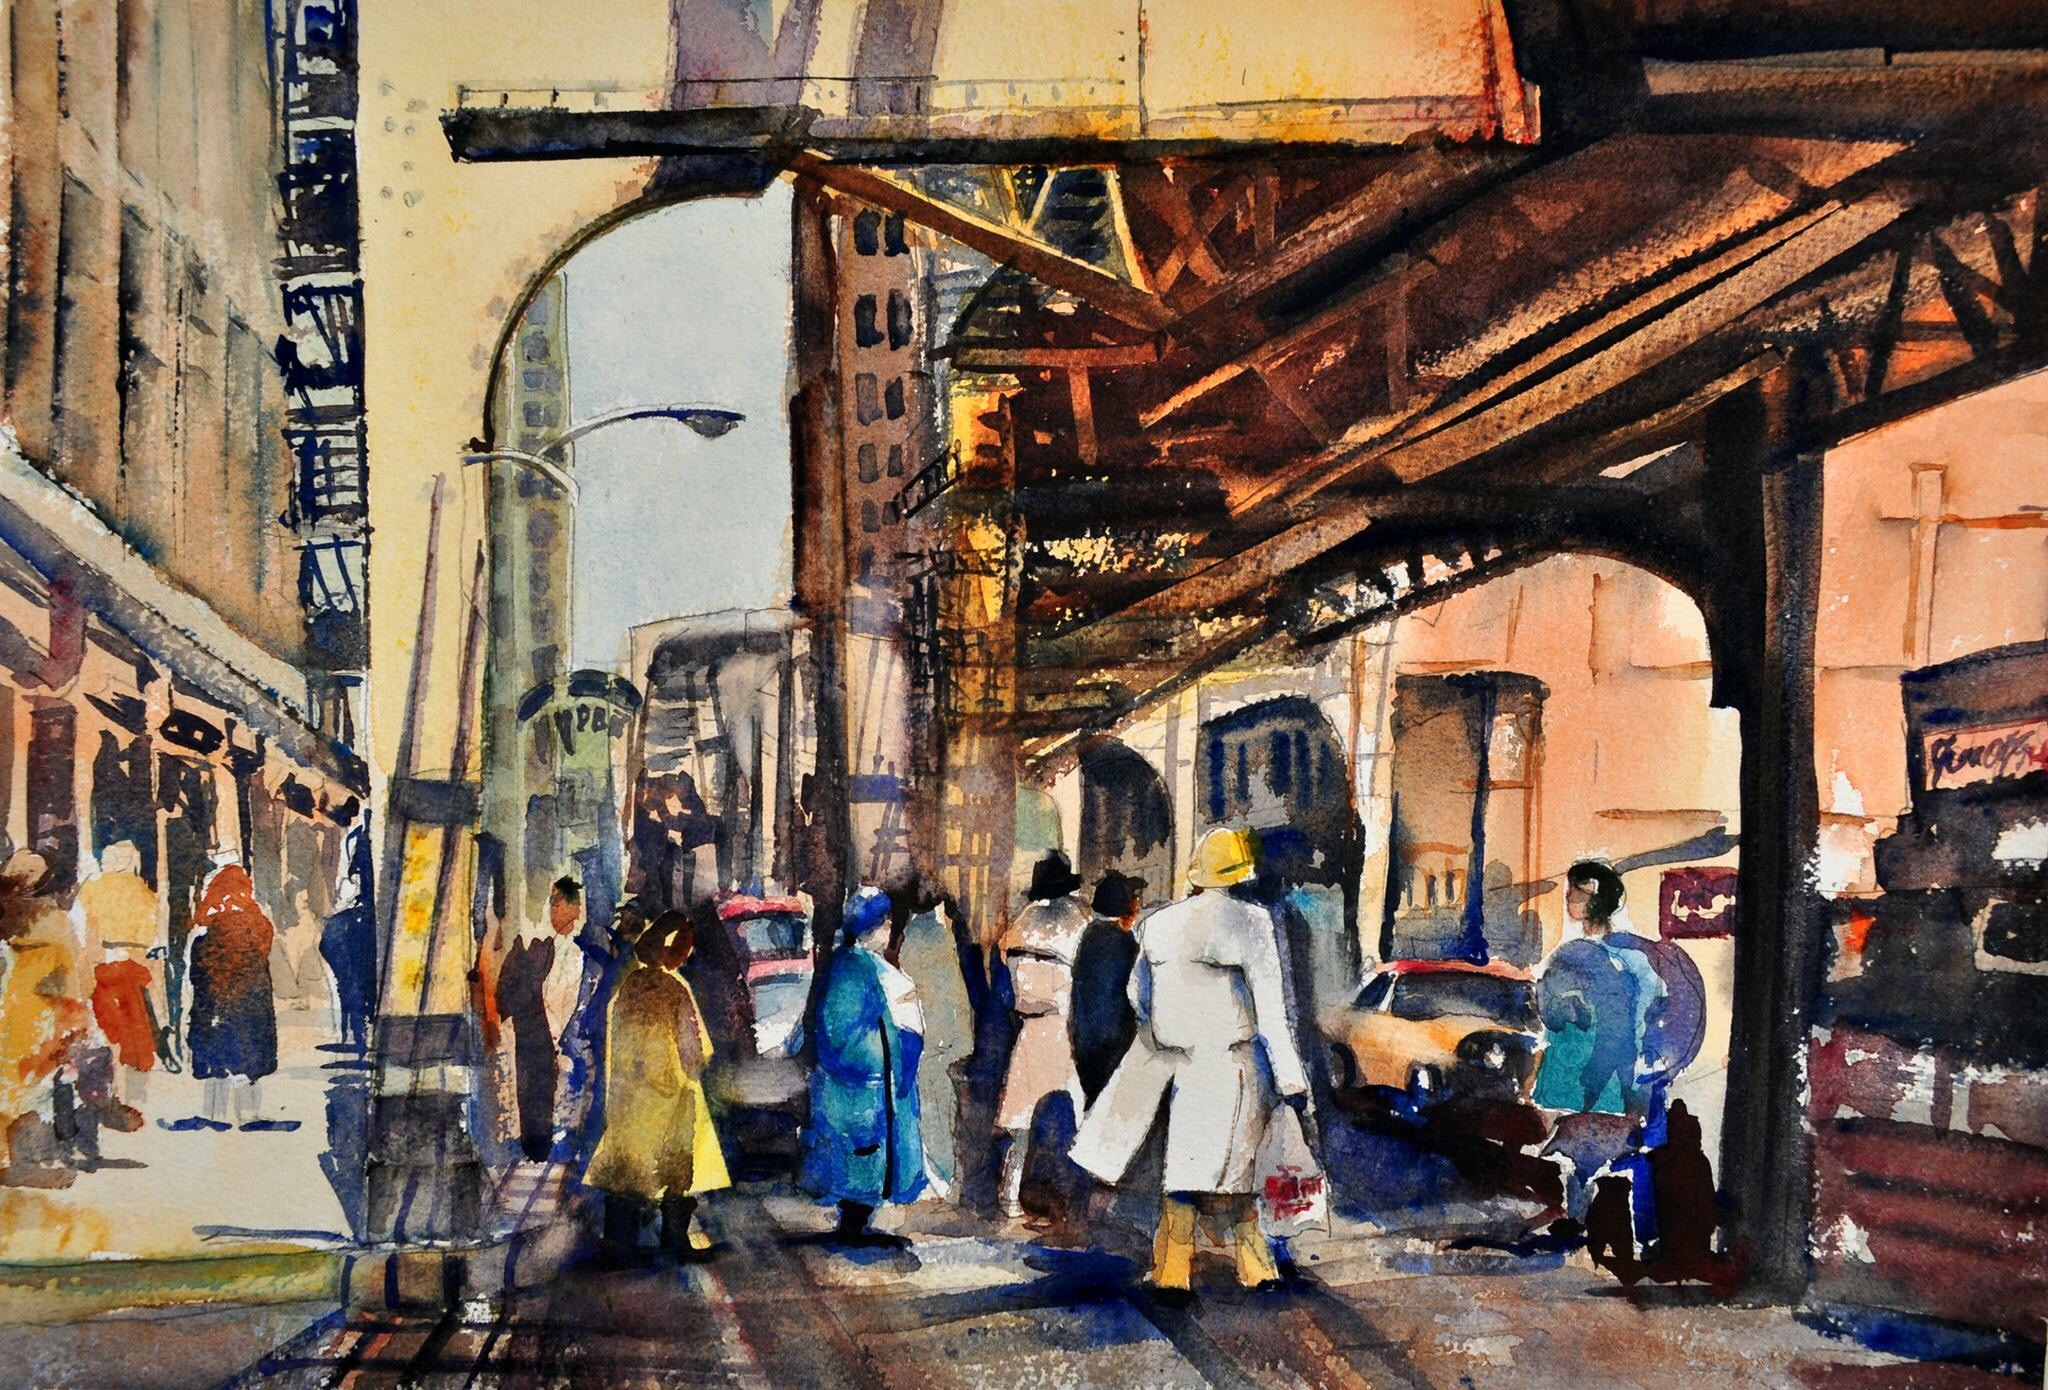 Under the El, (Elevated Train)